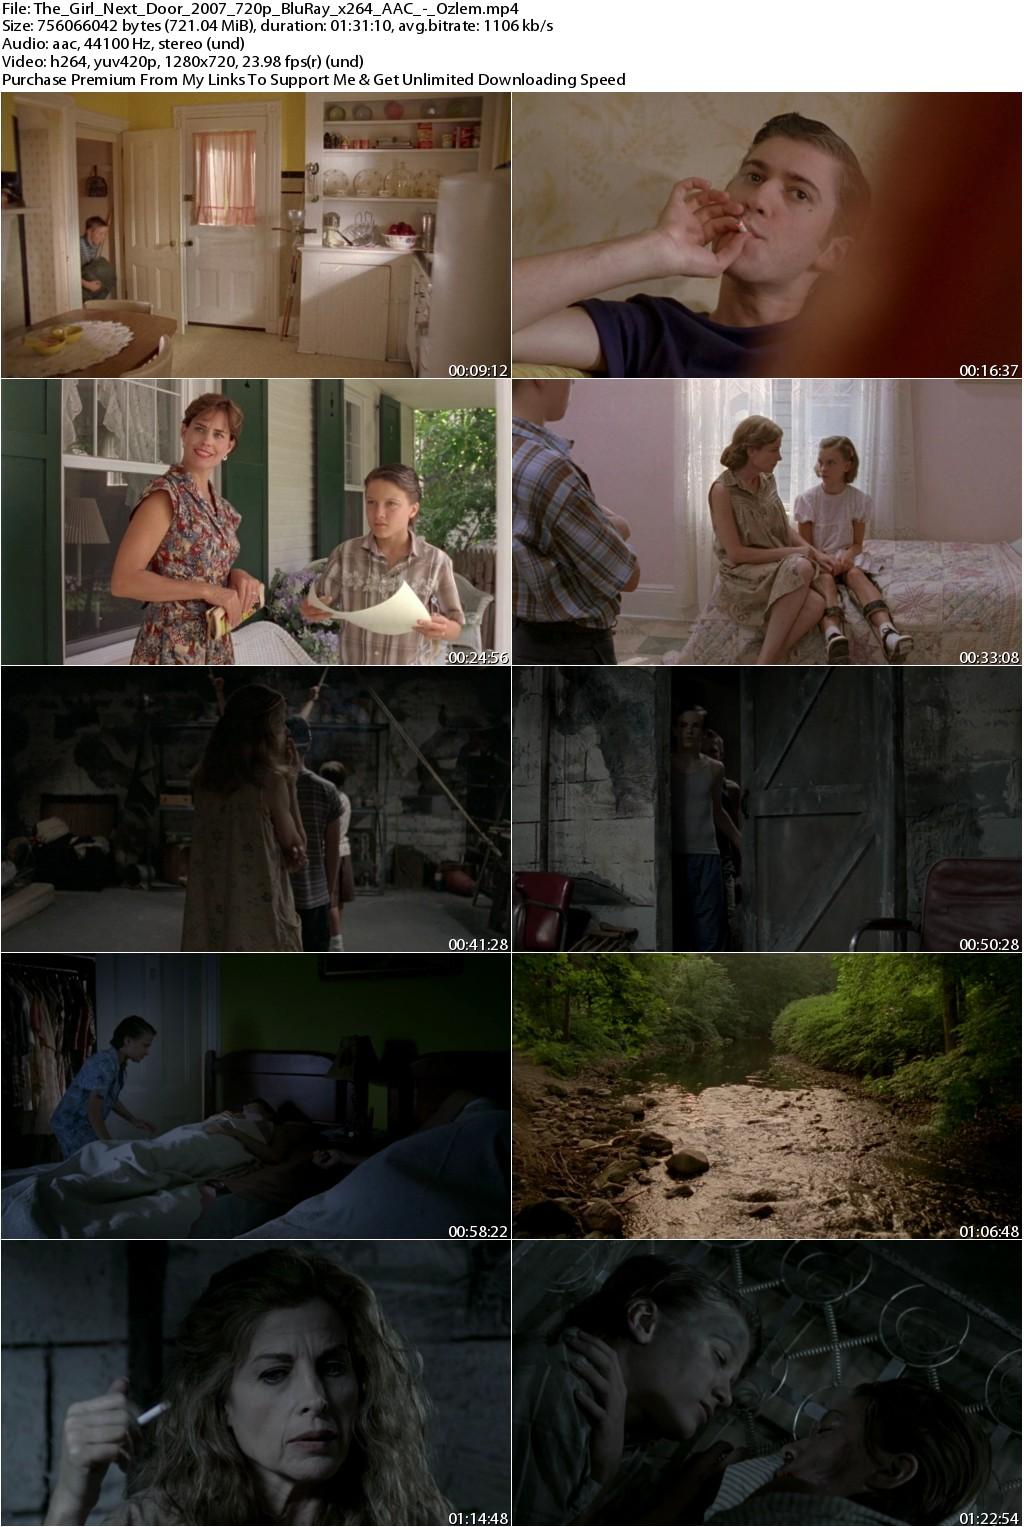 The Girl Next Door (2007) 720p BluRay x264 AAC-Ozlem